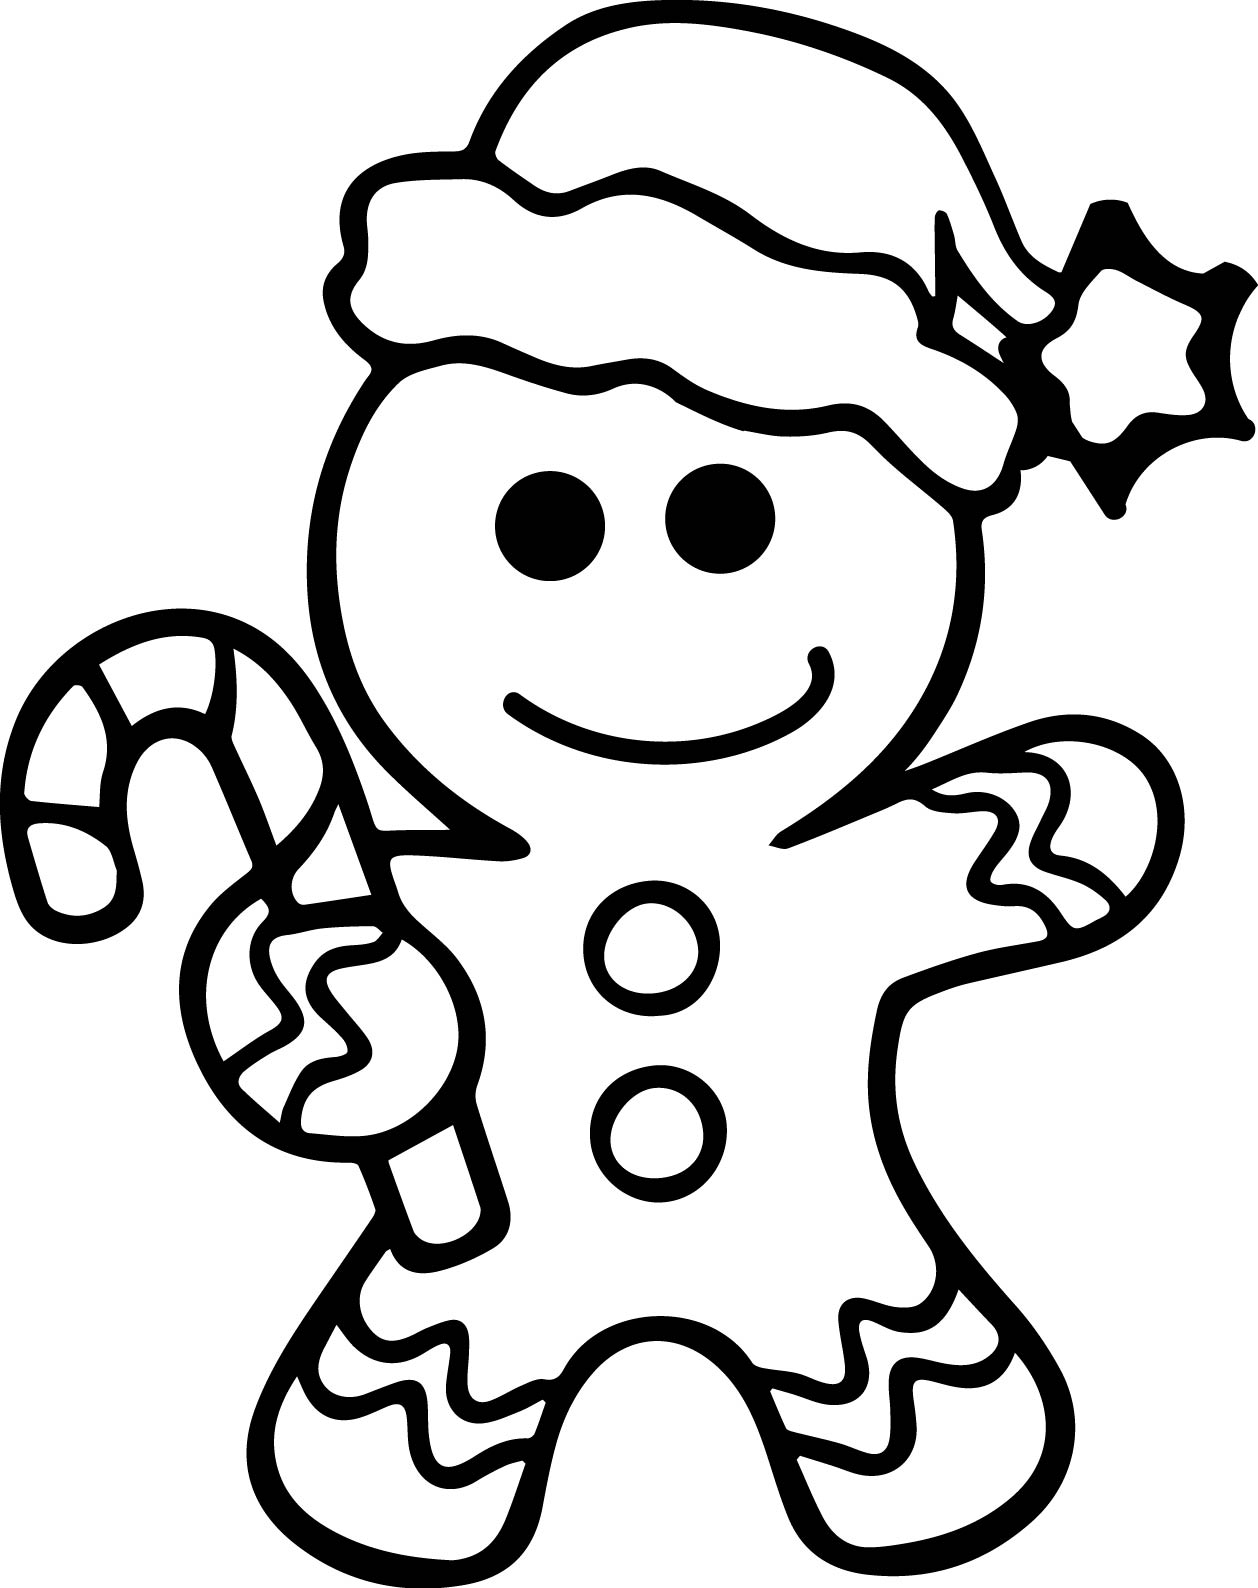 Gingerbread coloring page 2326065 750x425 gingerbread activities